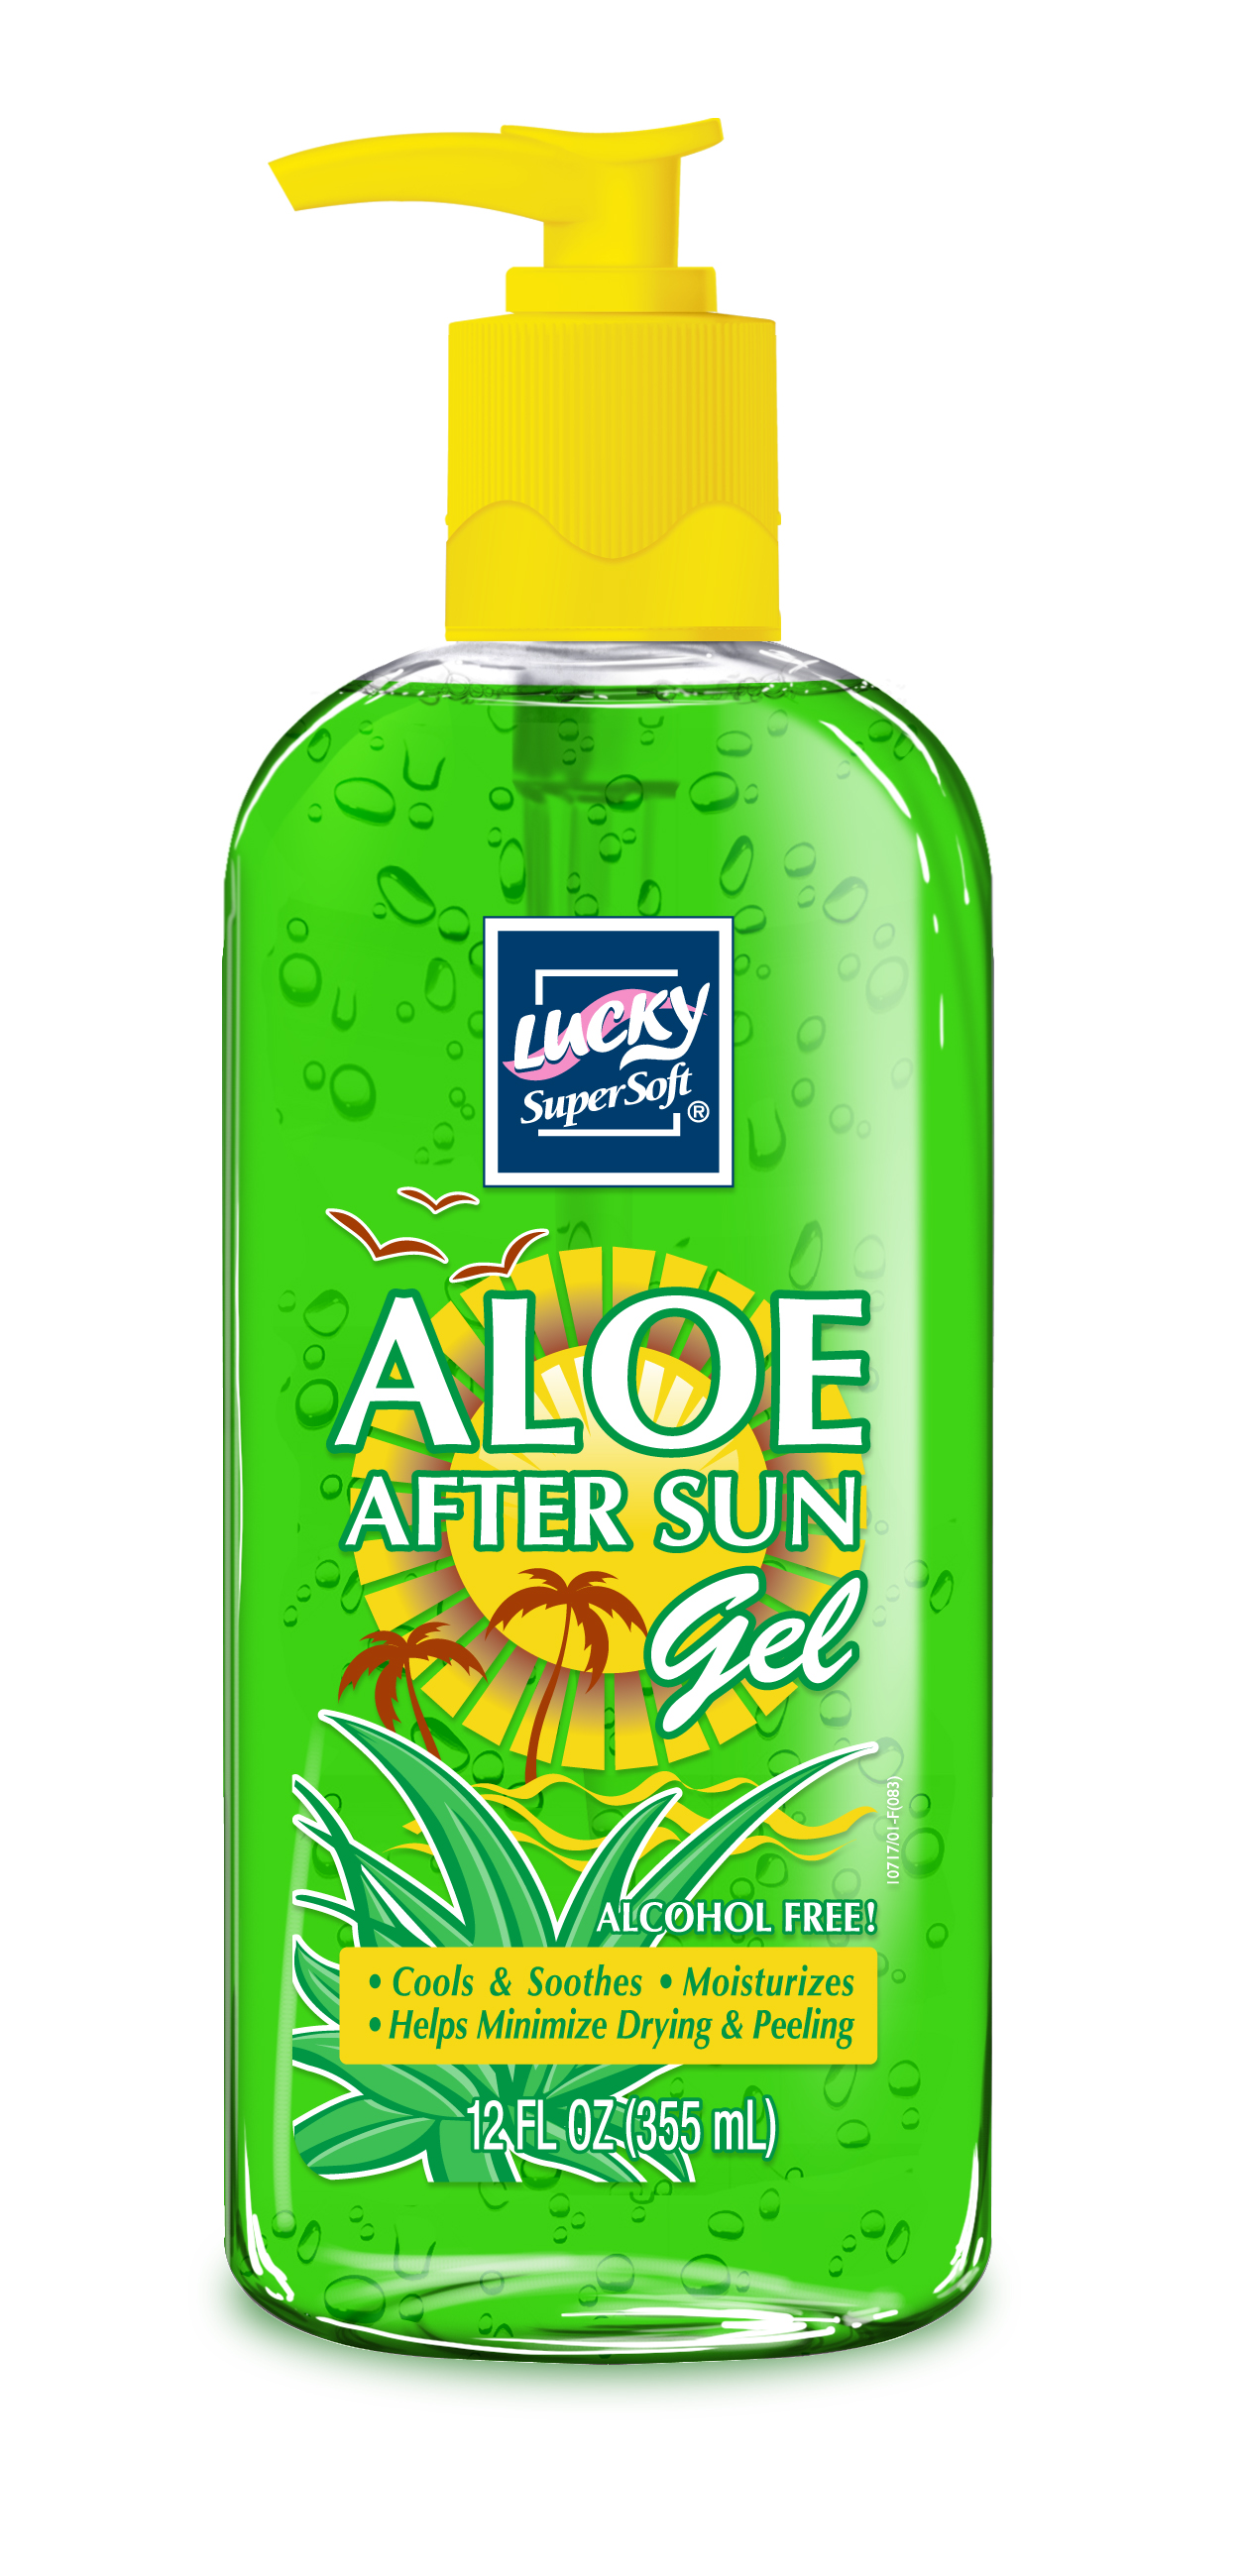 Delta Brands 12oz Lucky Super Soft Aloe Vera AfterSun Body Gel 10717-12